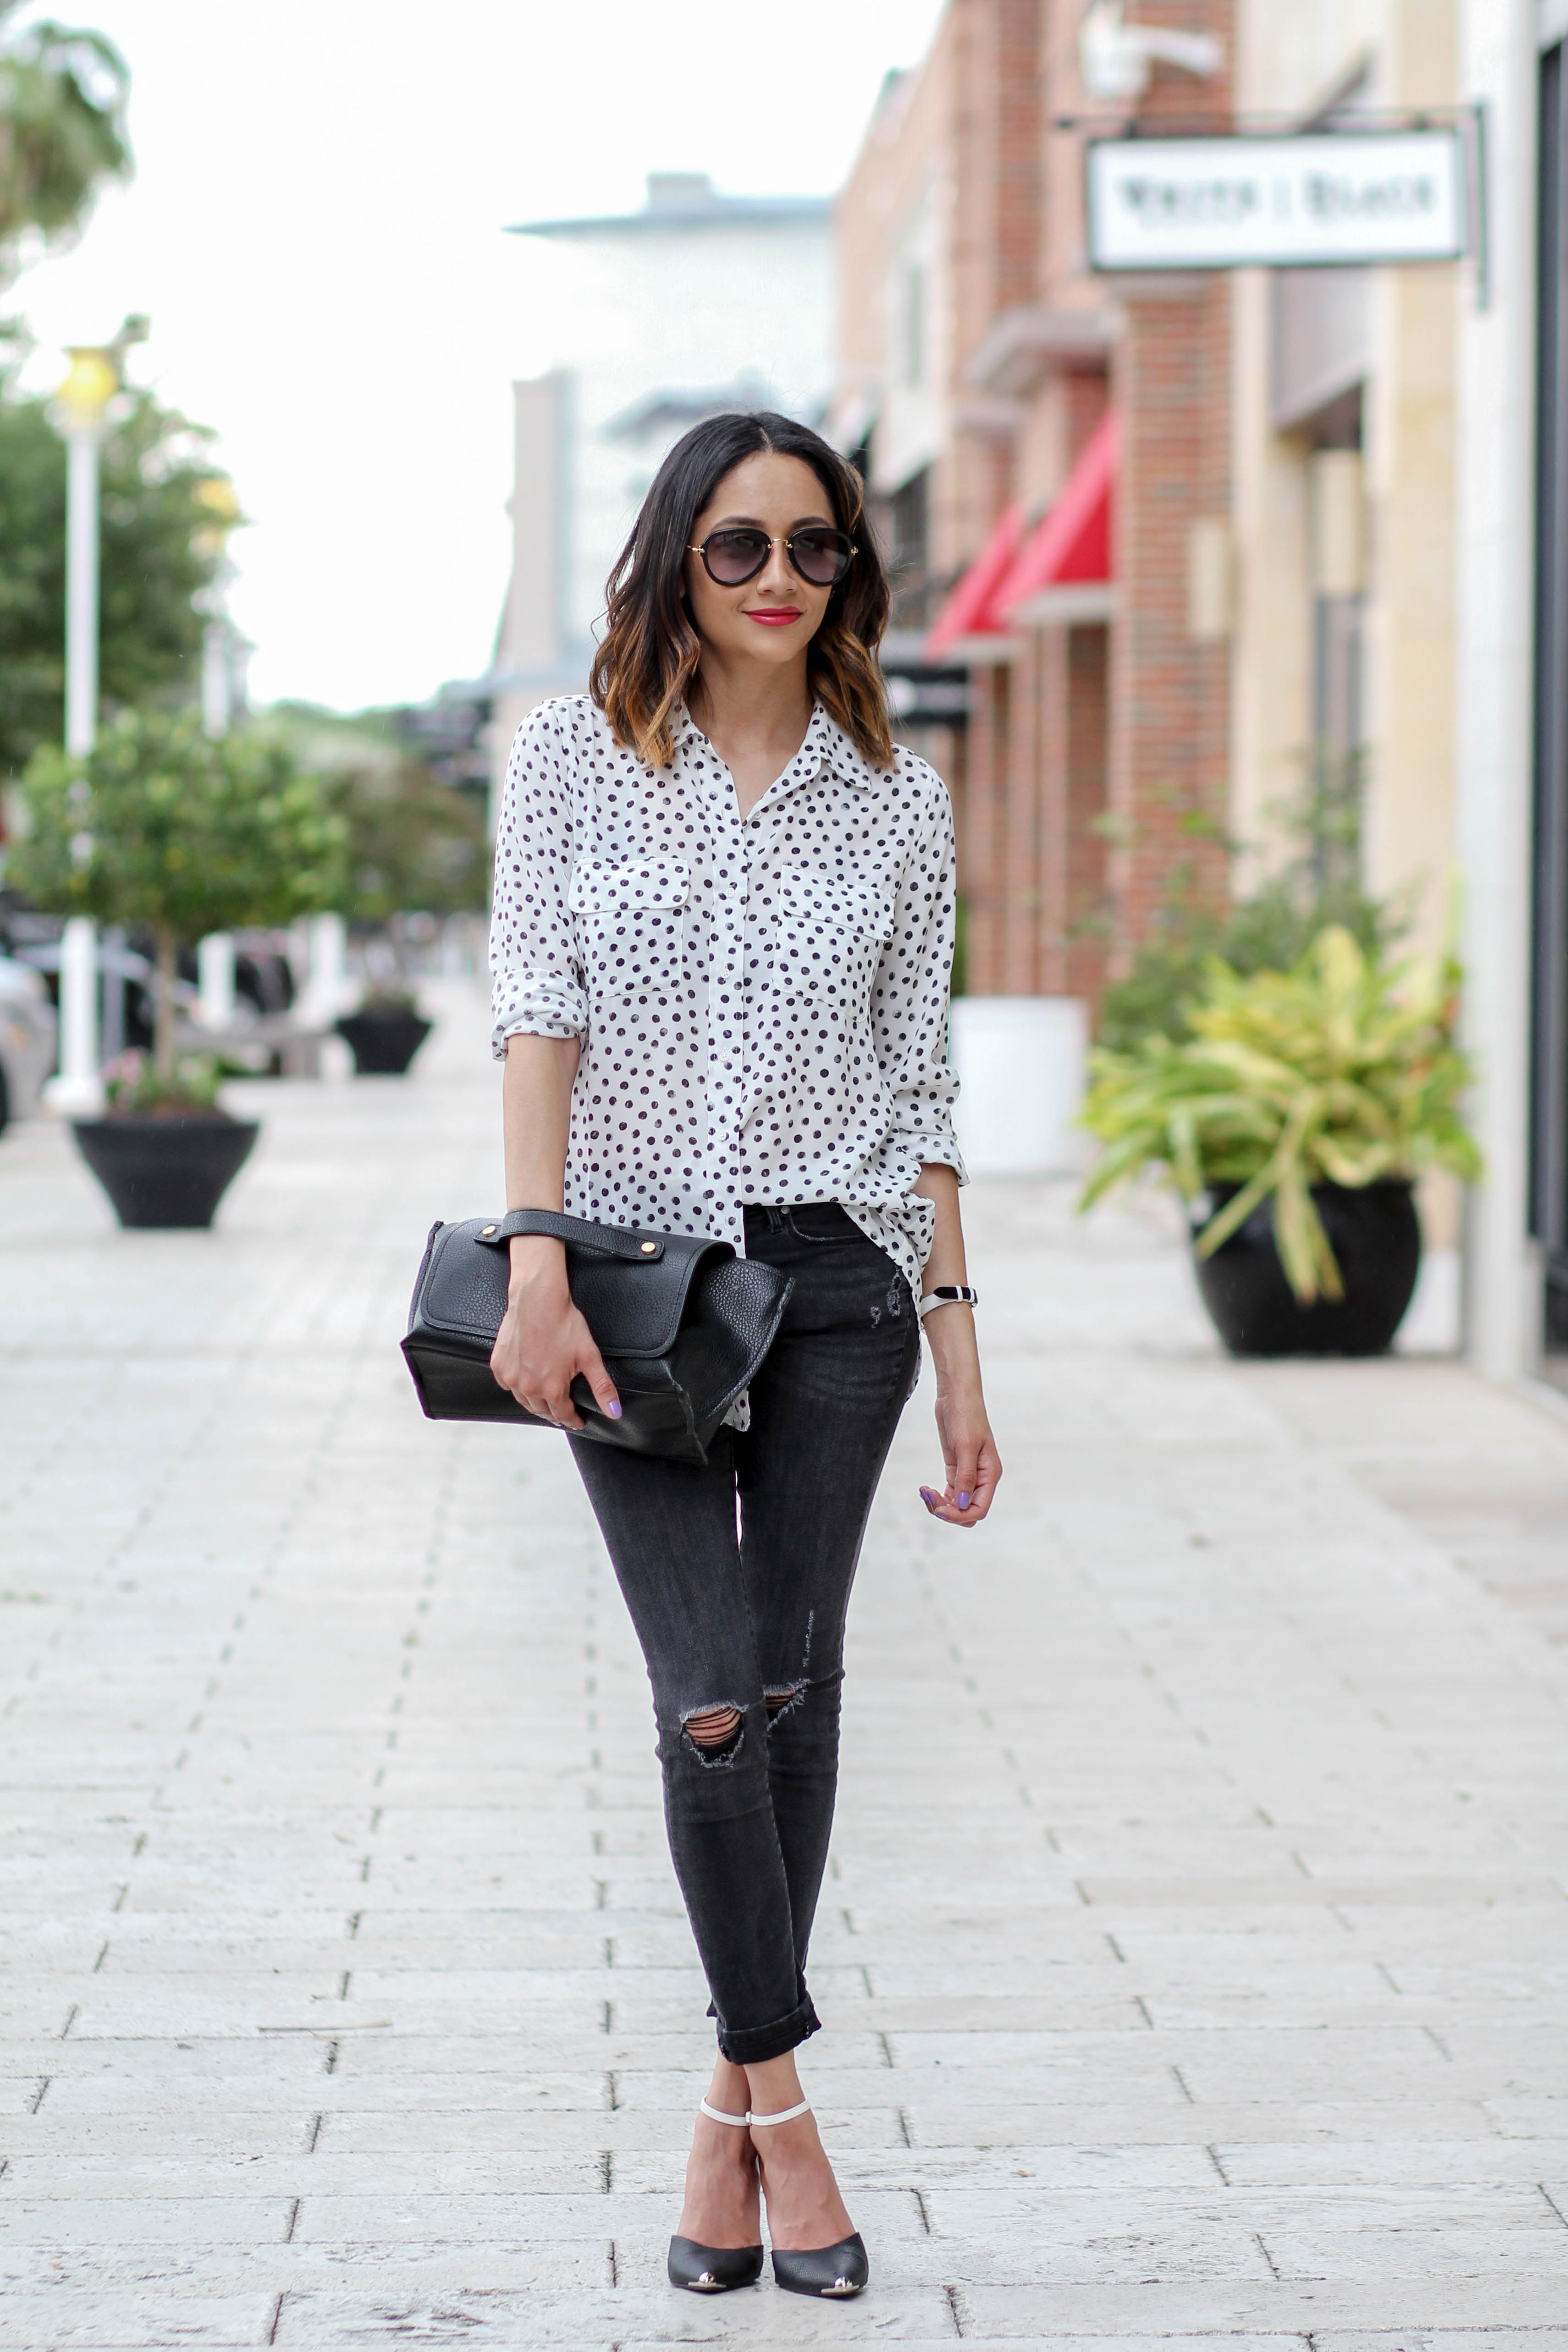 Polka Dotted Shirt |Casual Look